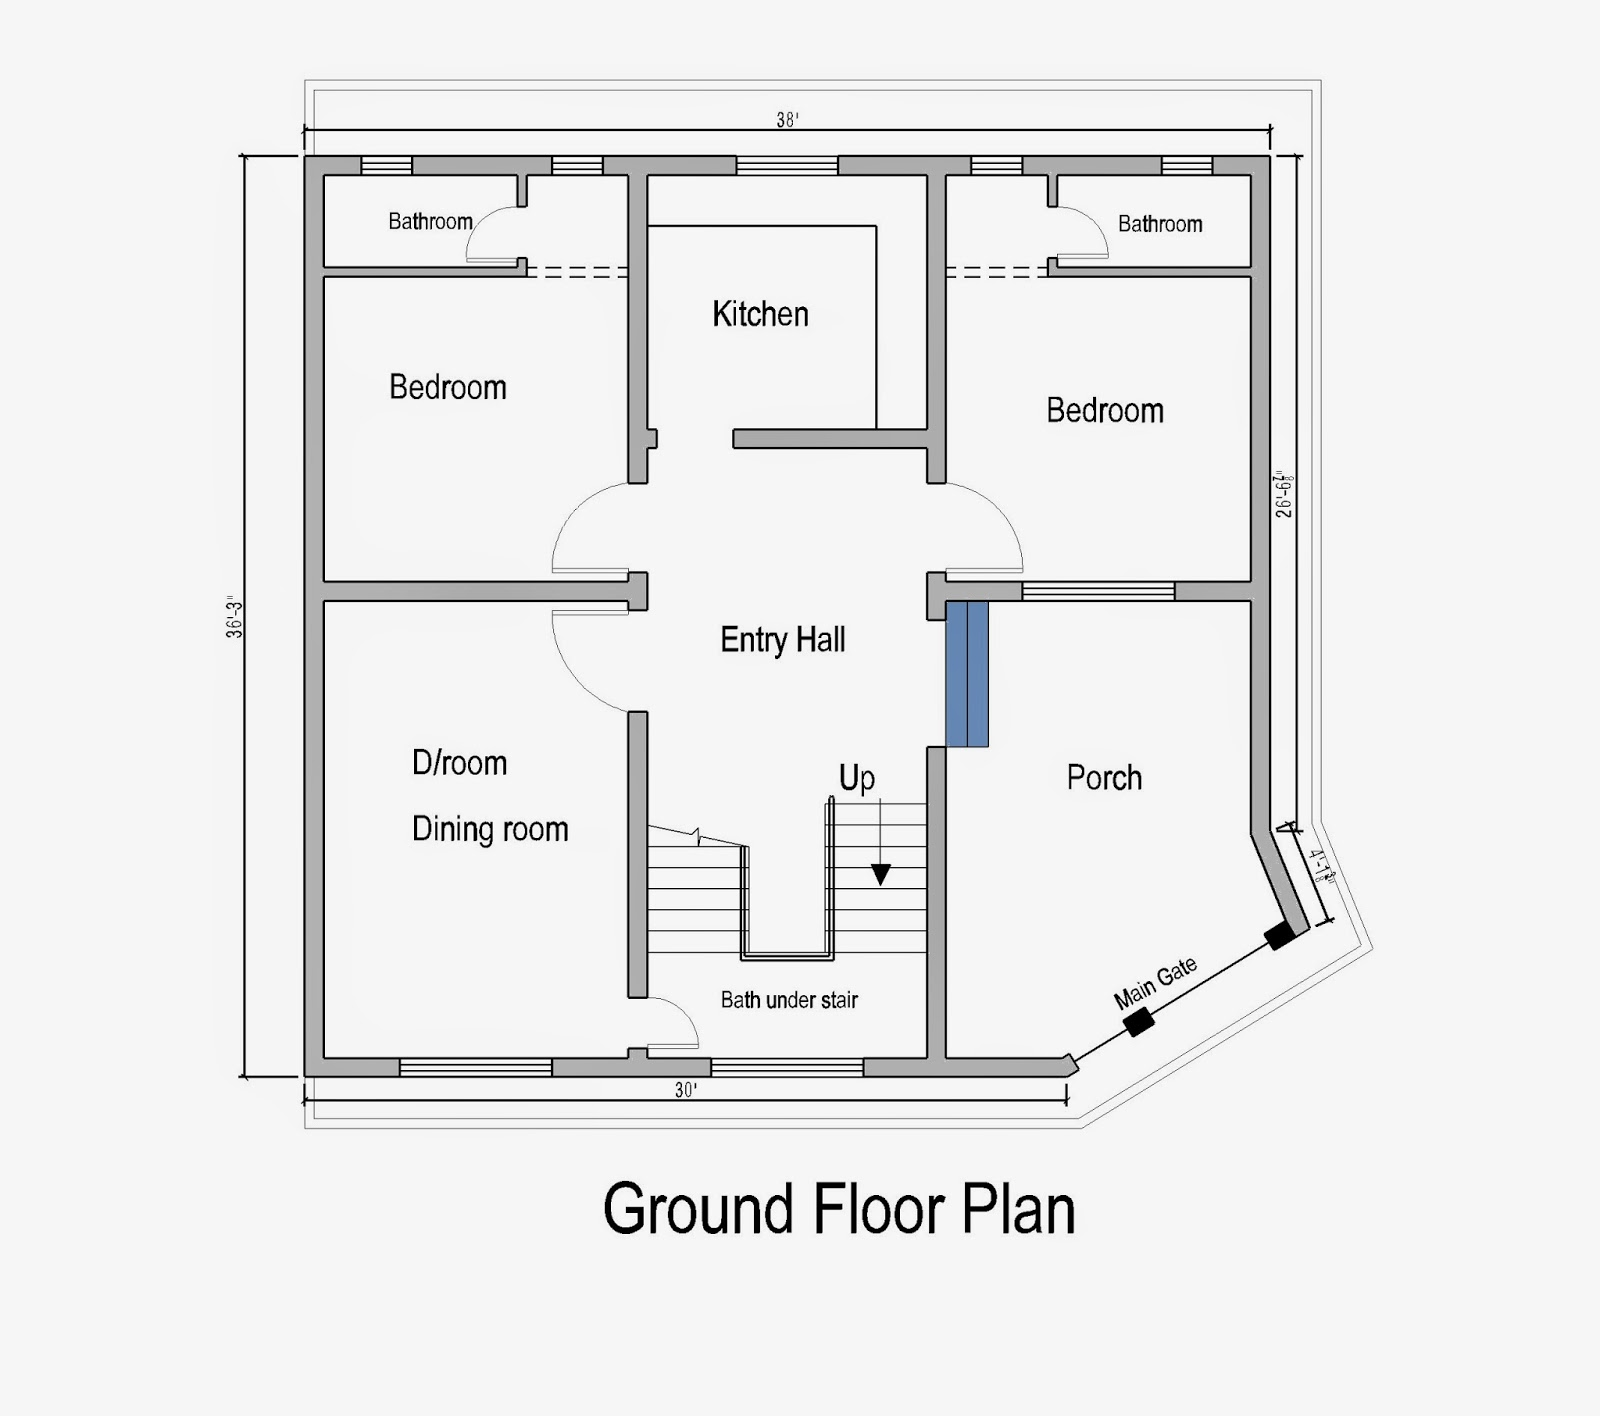 honey home plan in pakistan address gujrat pakistan ground floor area ...